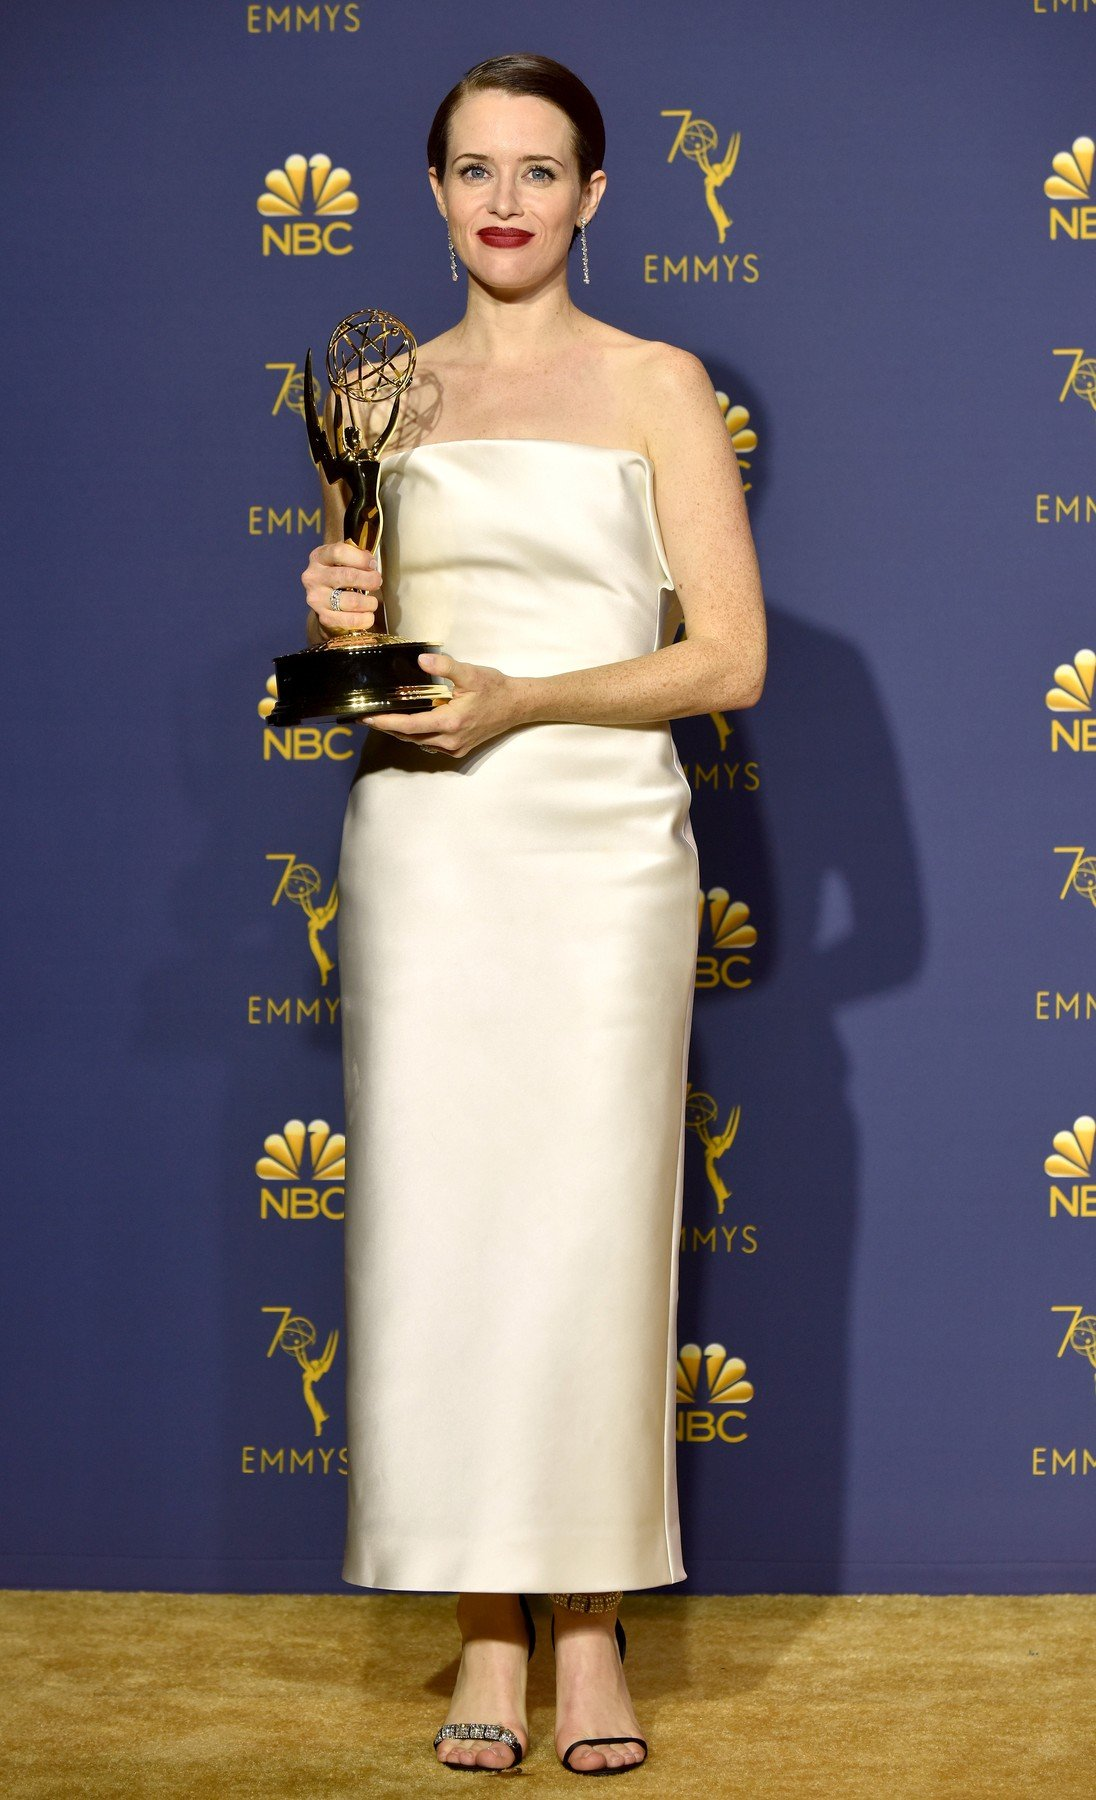 Claire Foy, winner of the award for Outstanding Lead Actress in a Drama Series for